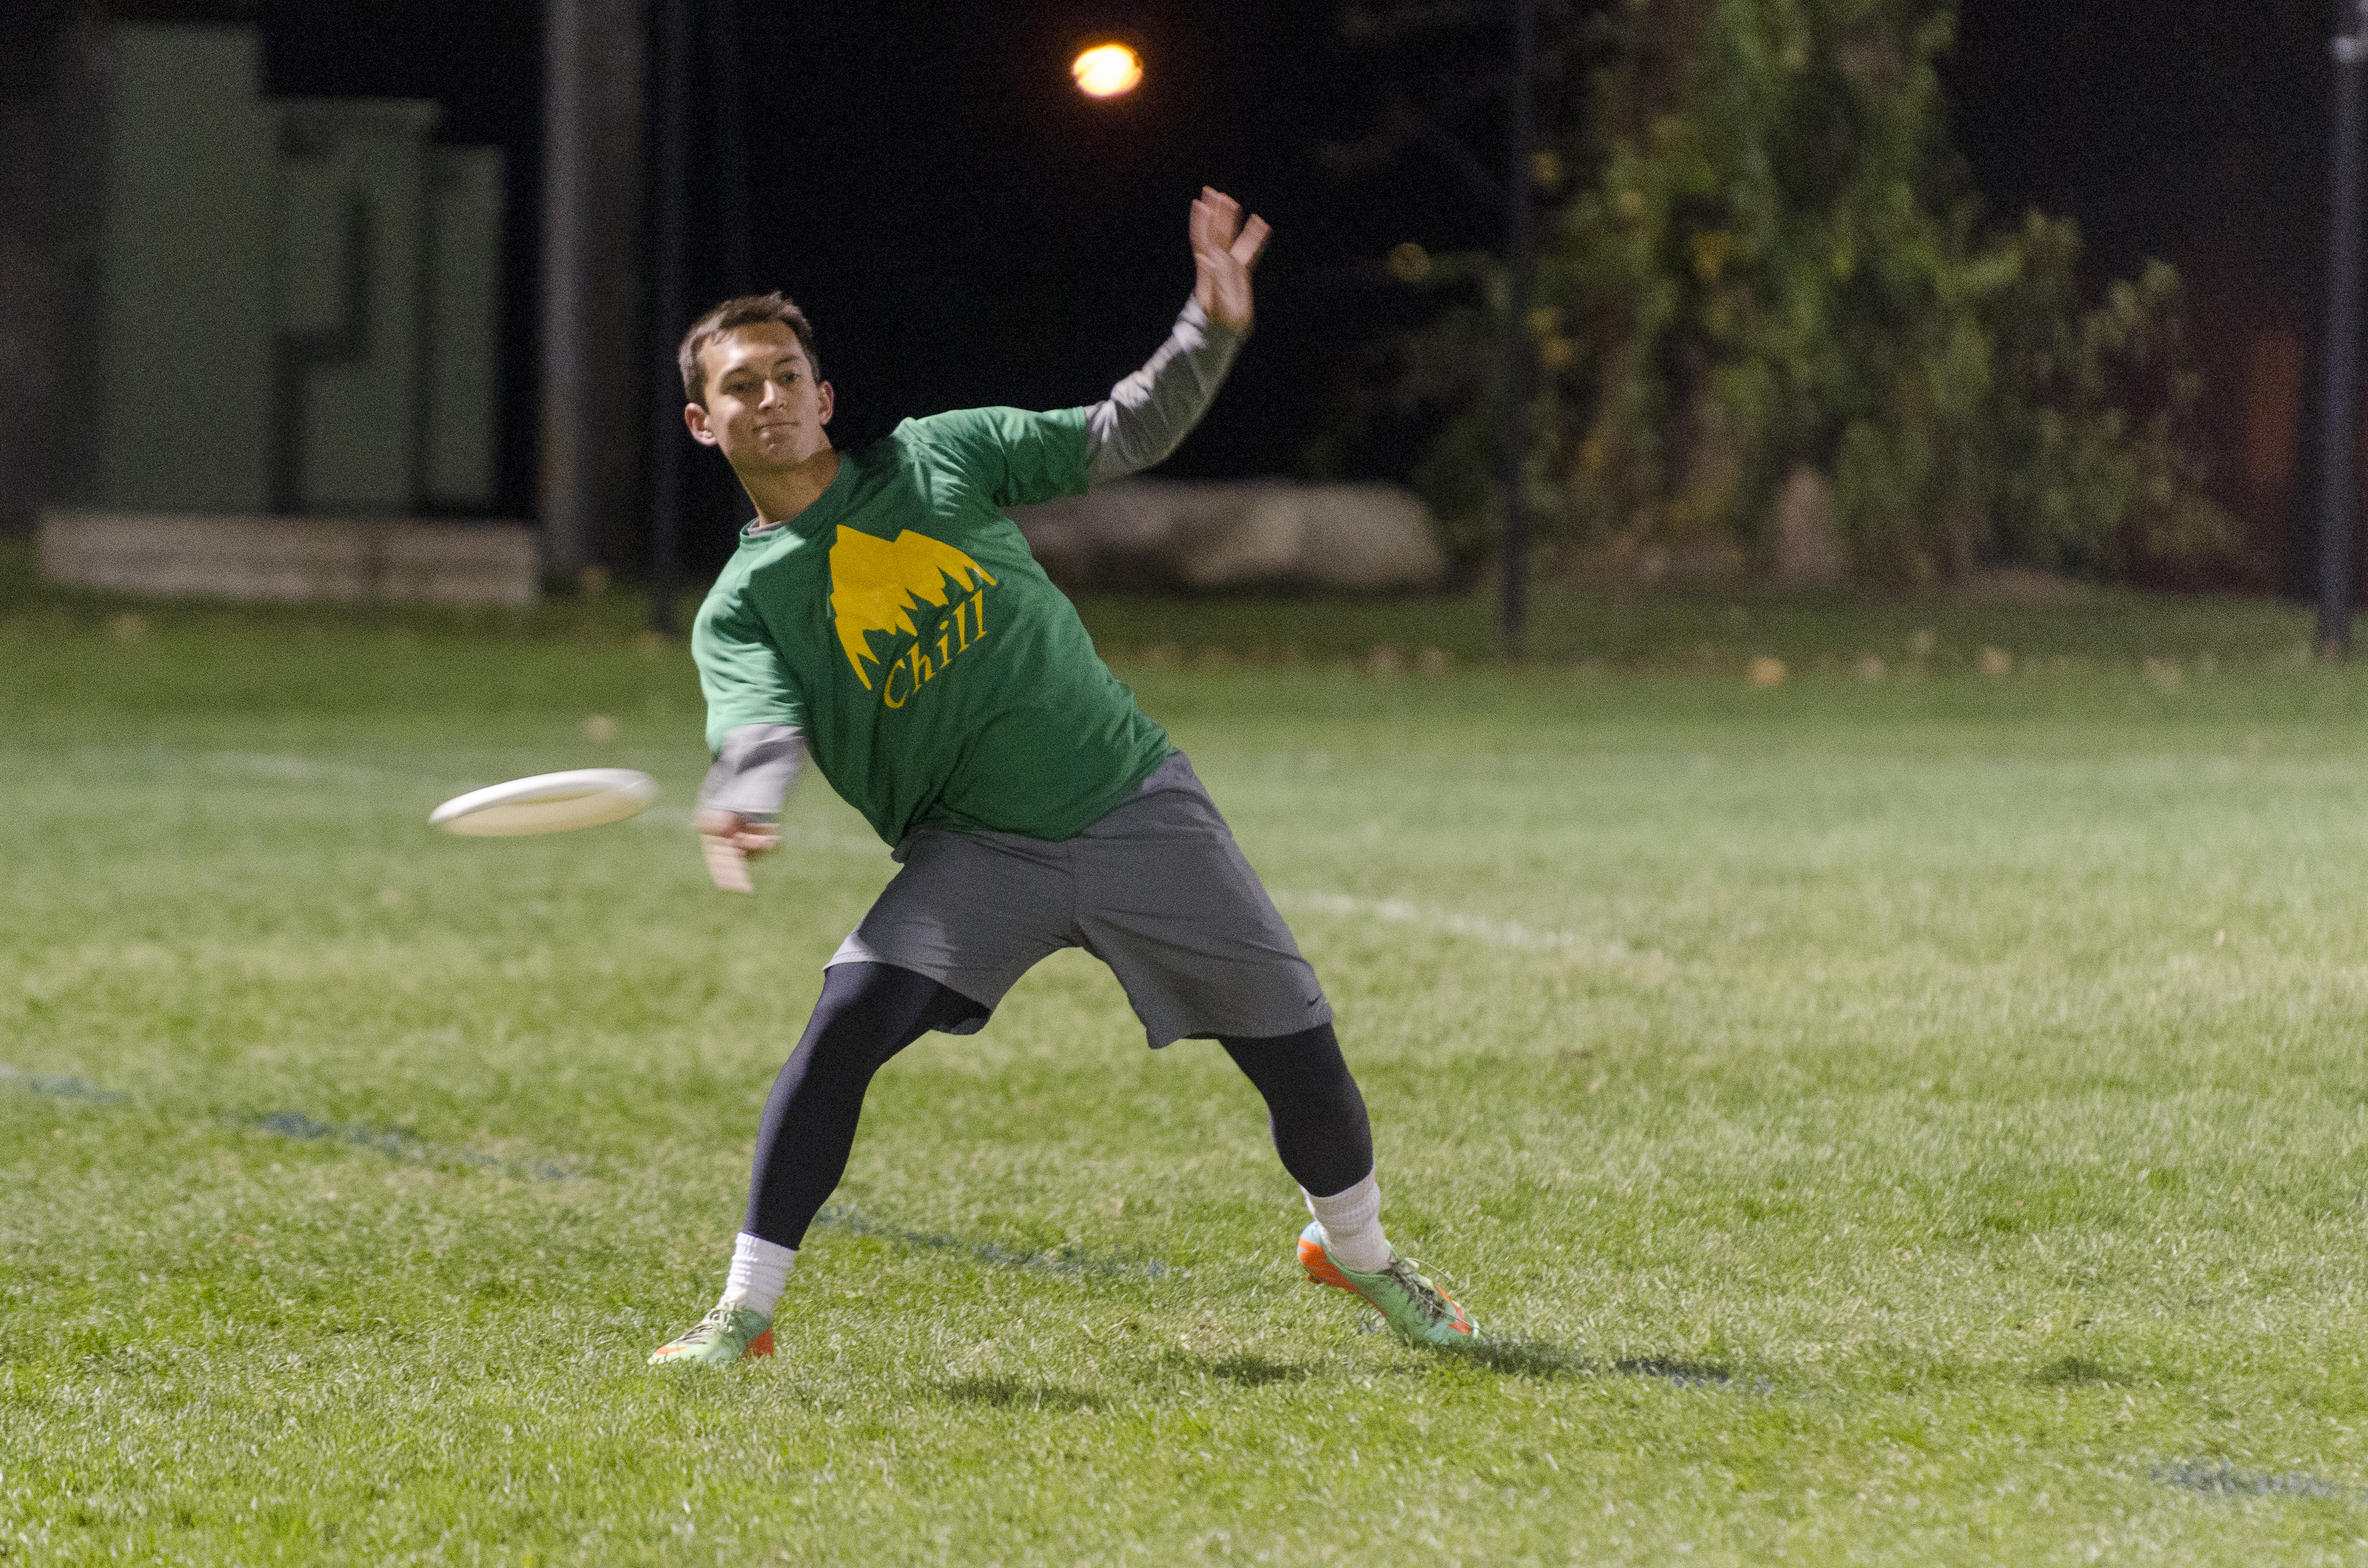 Ultimate Frisbee - UConn Today